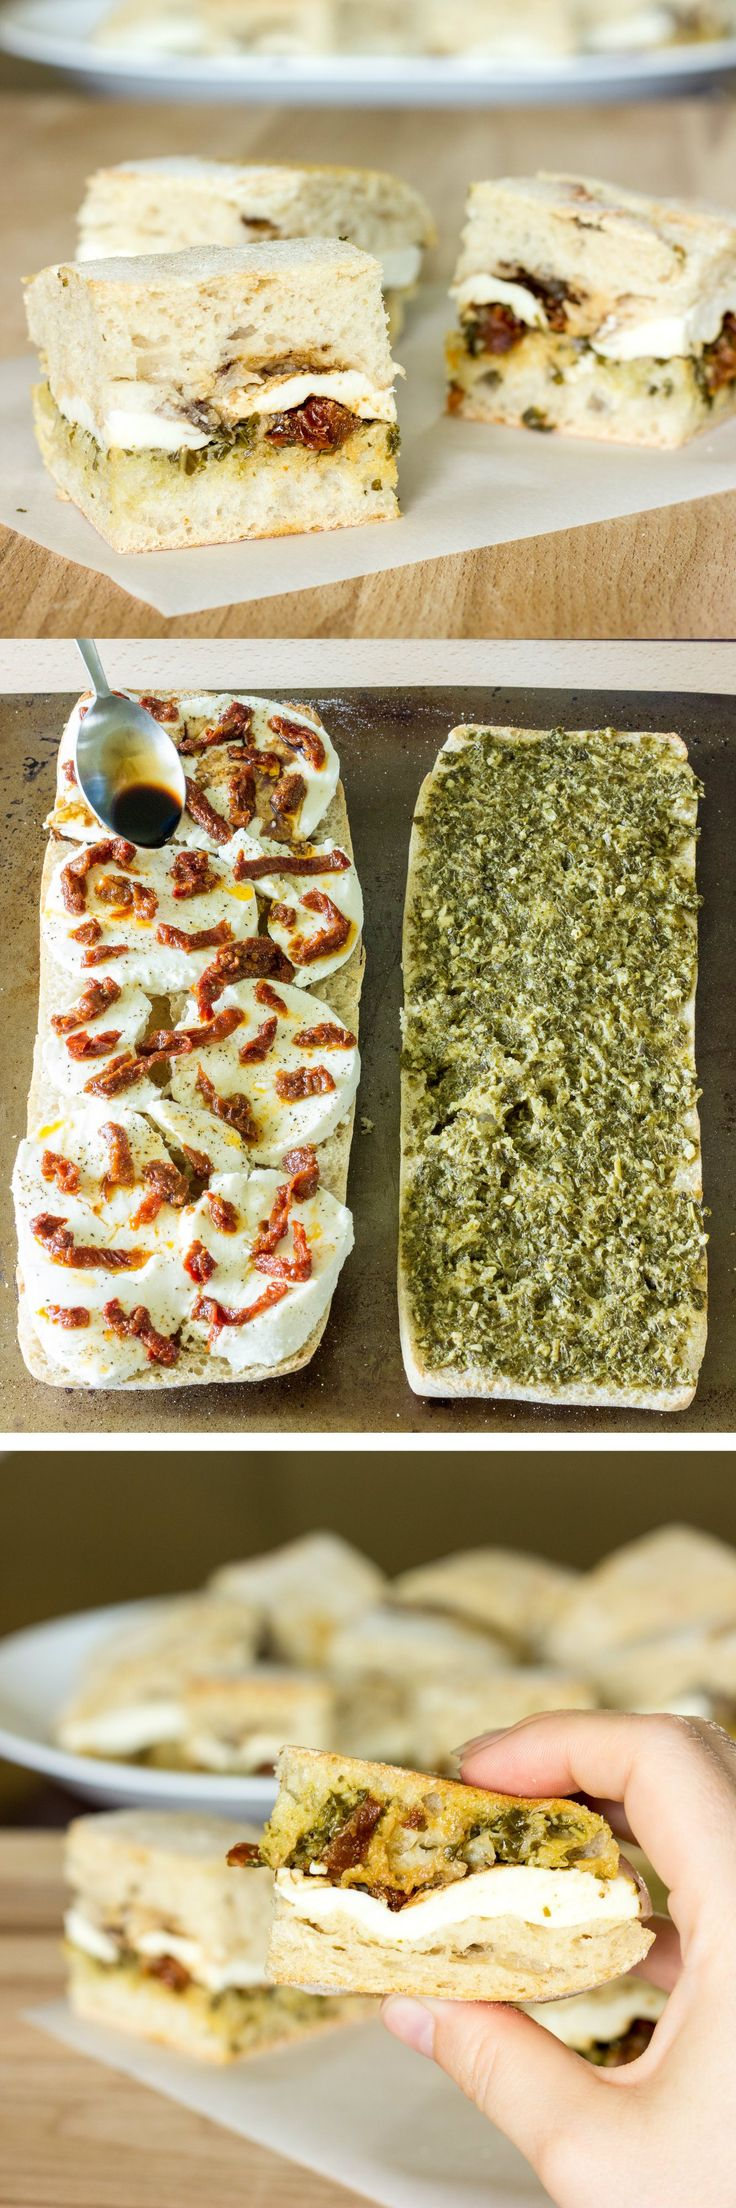 Pressed Caprese Sandwiches - Perfect for a party or barbeque because they can be served cold or at room temperature.